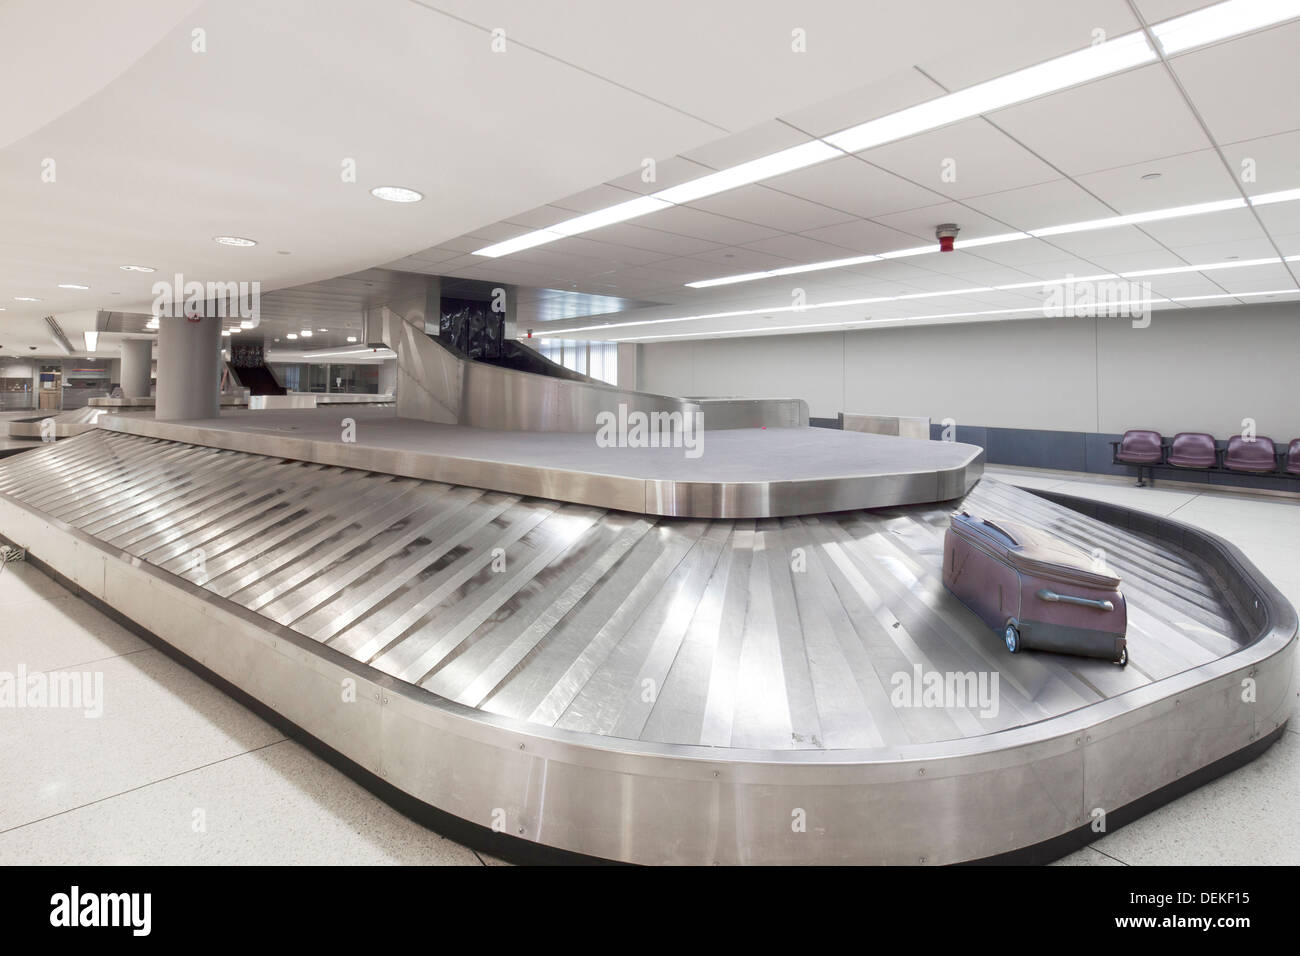 Suitcase on baggage claim carousel in airport - Stock Image